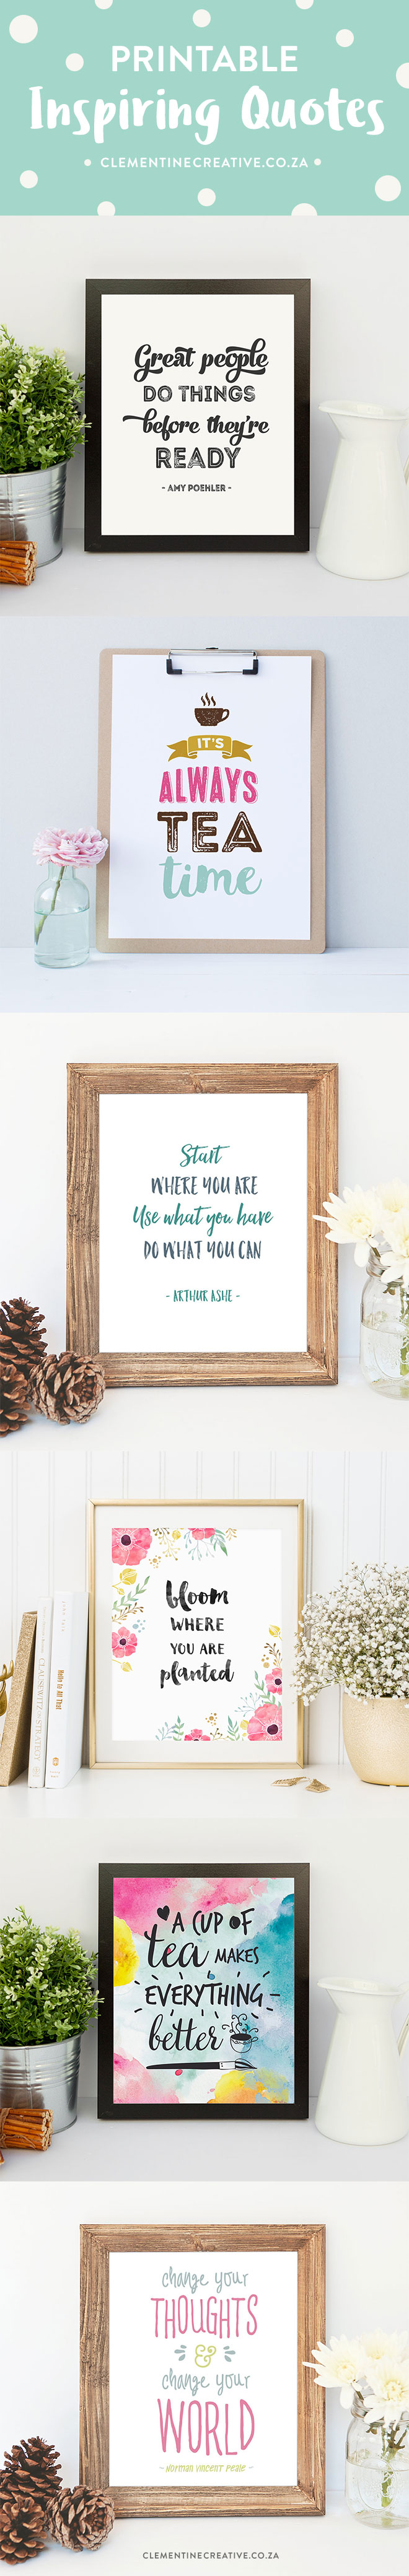 Need a little motivation on dull days? These beautiful printable inspirational quote prints will surely motivate you to get back in the groove!